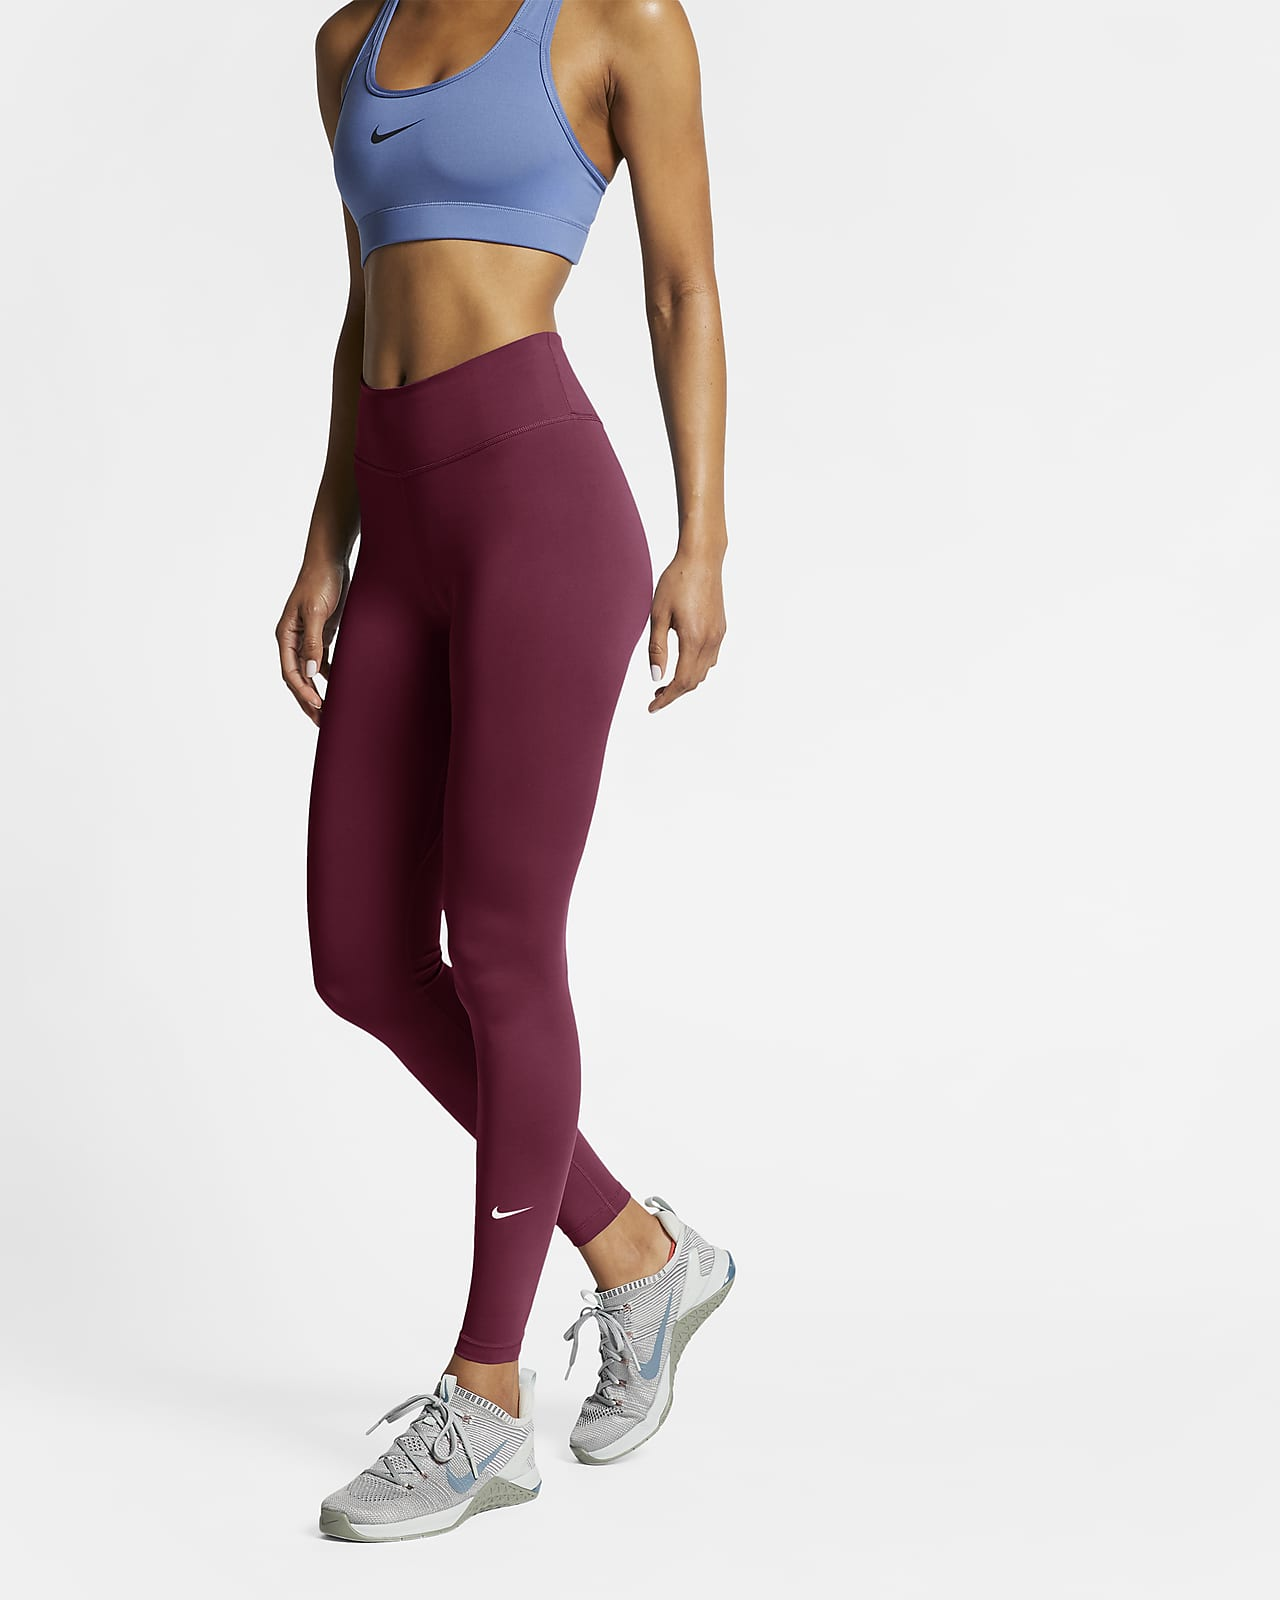 Nike One Damen-Tights mit halbhohem Bund